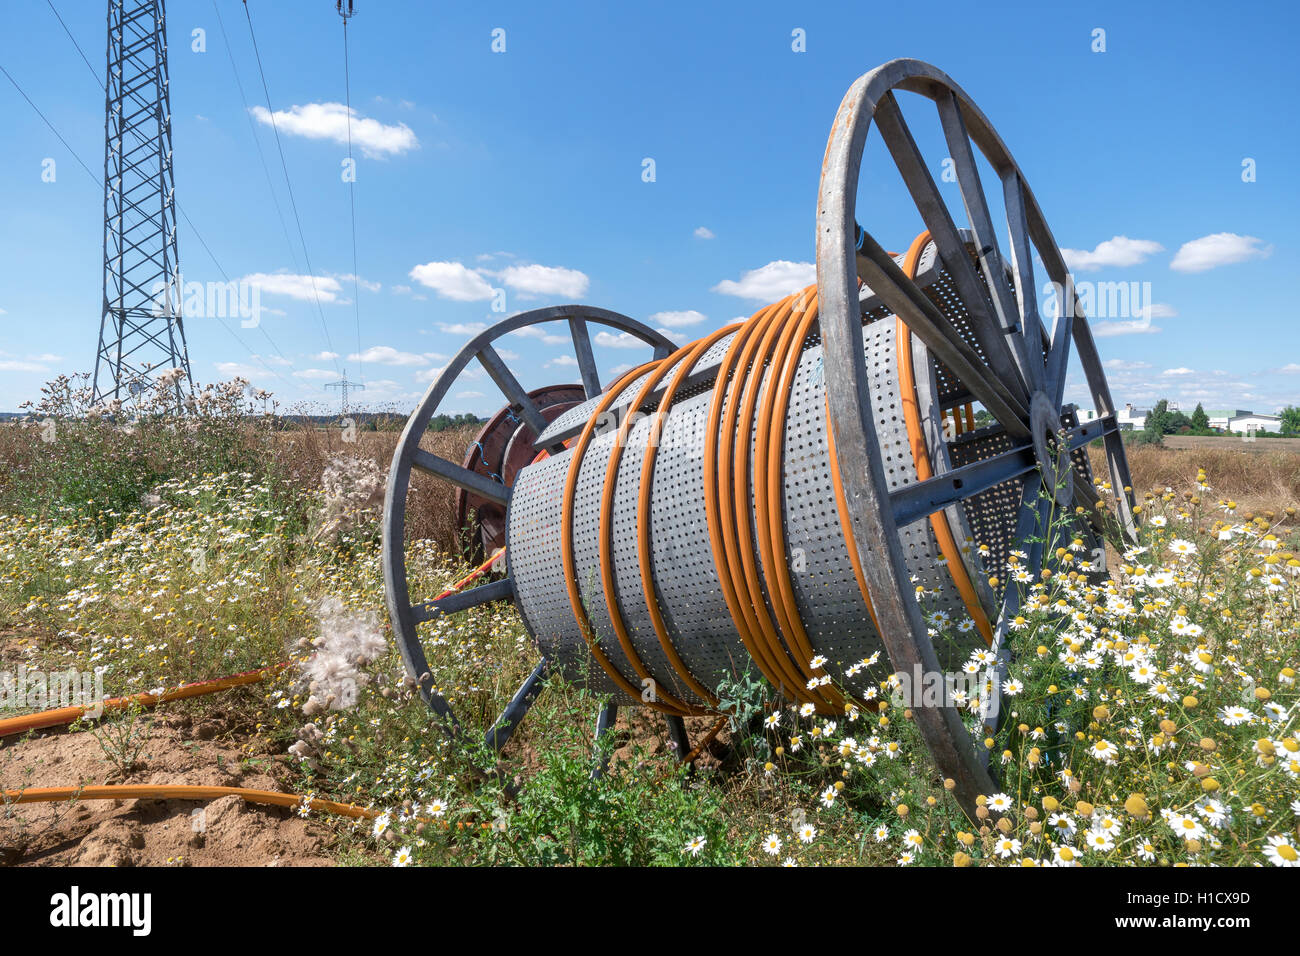 Cable reel - Stock Image